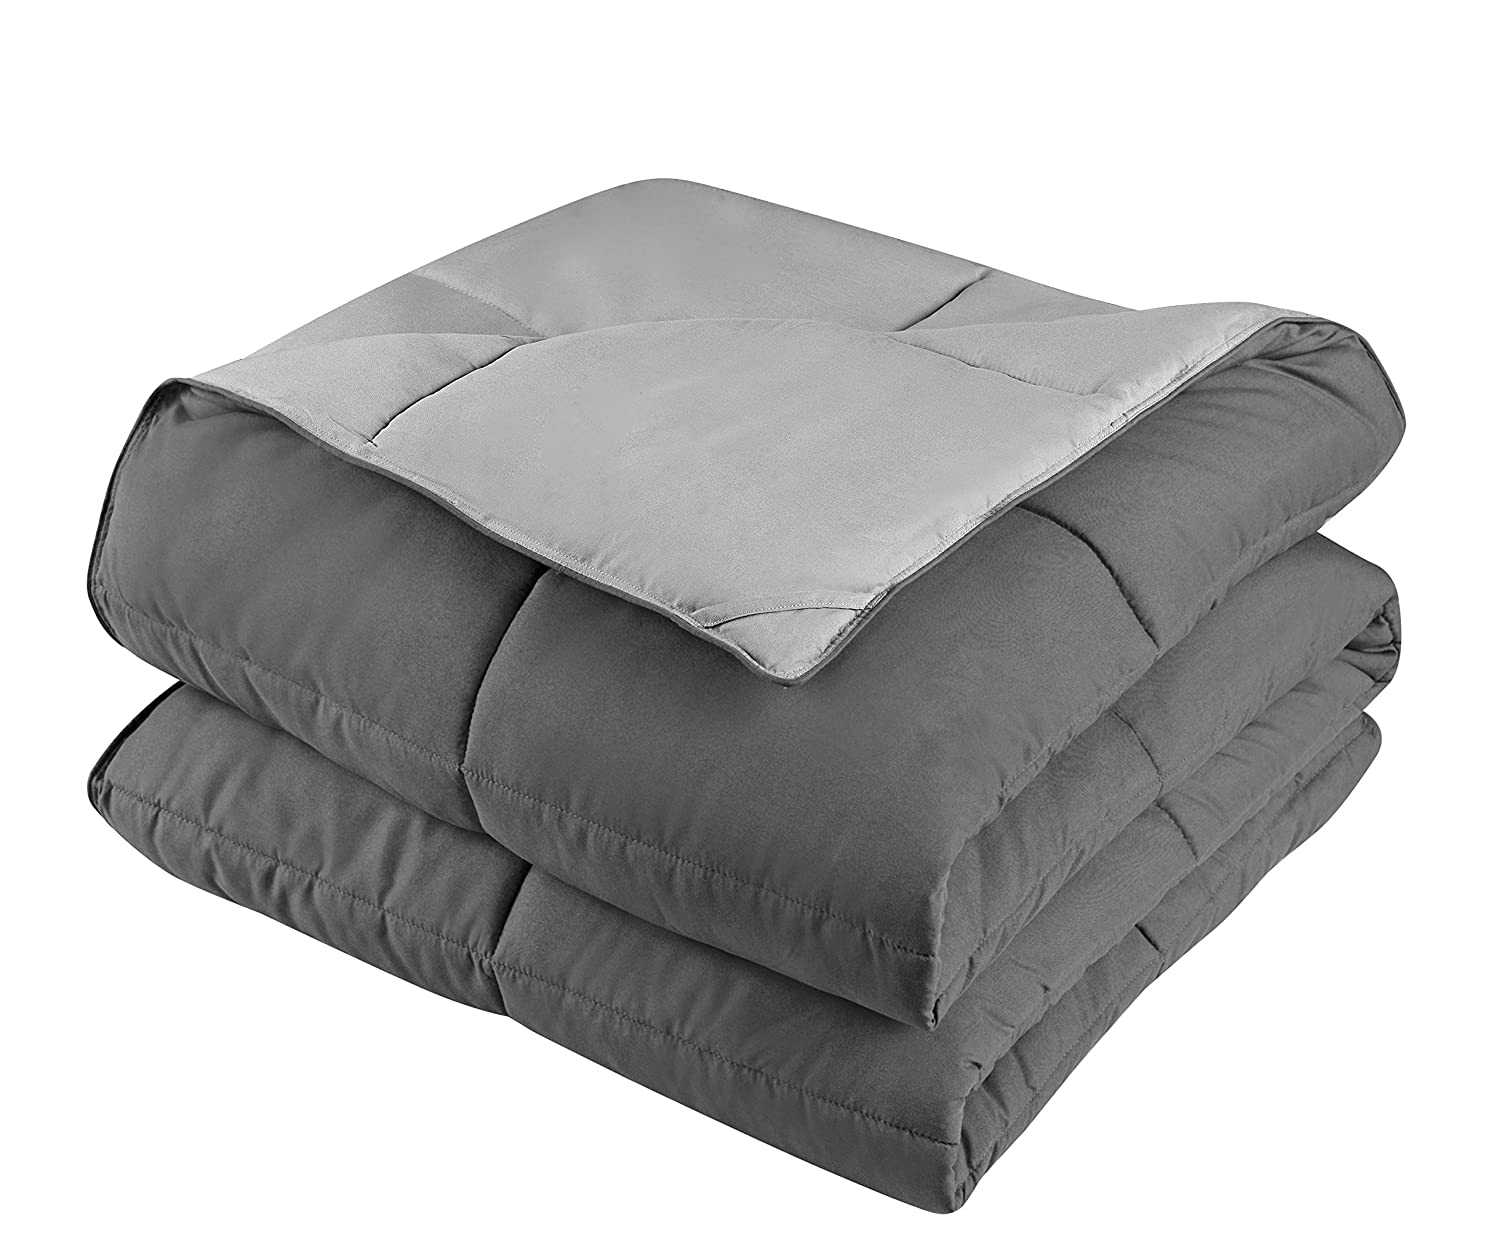 Twin//Twin XL,Dark Gray//Light Gray Soft Fluffy HOMECHOICE HOMECHOICE-DOWNALTERNATIVE Hypoallergenic 2pc Down Alternative Comforter Set -All Season Reversible Comforter with One Sham -Quilted Duvet Insert with Corner Tabs -Box Stitched